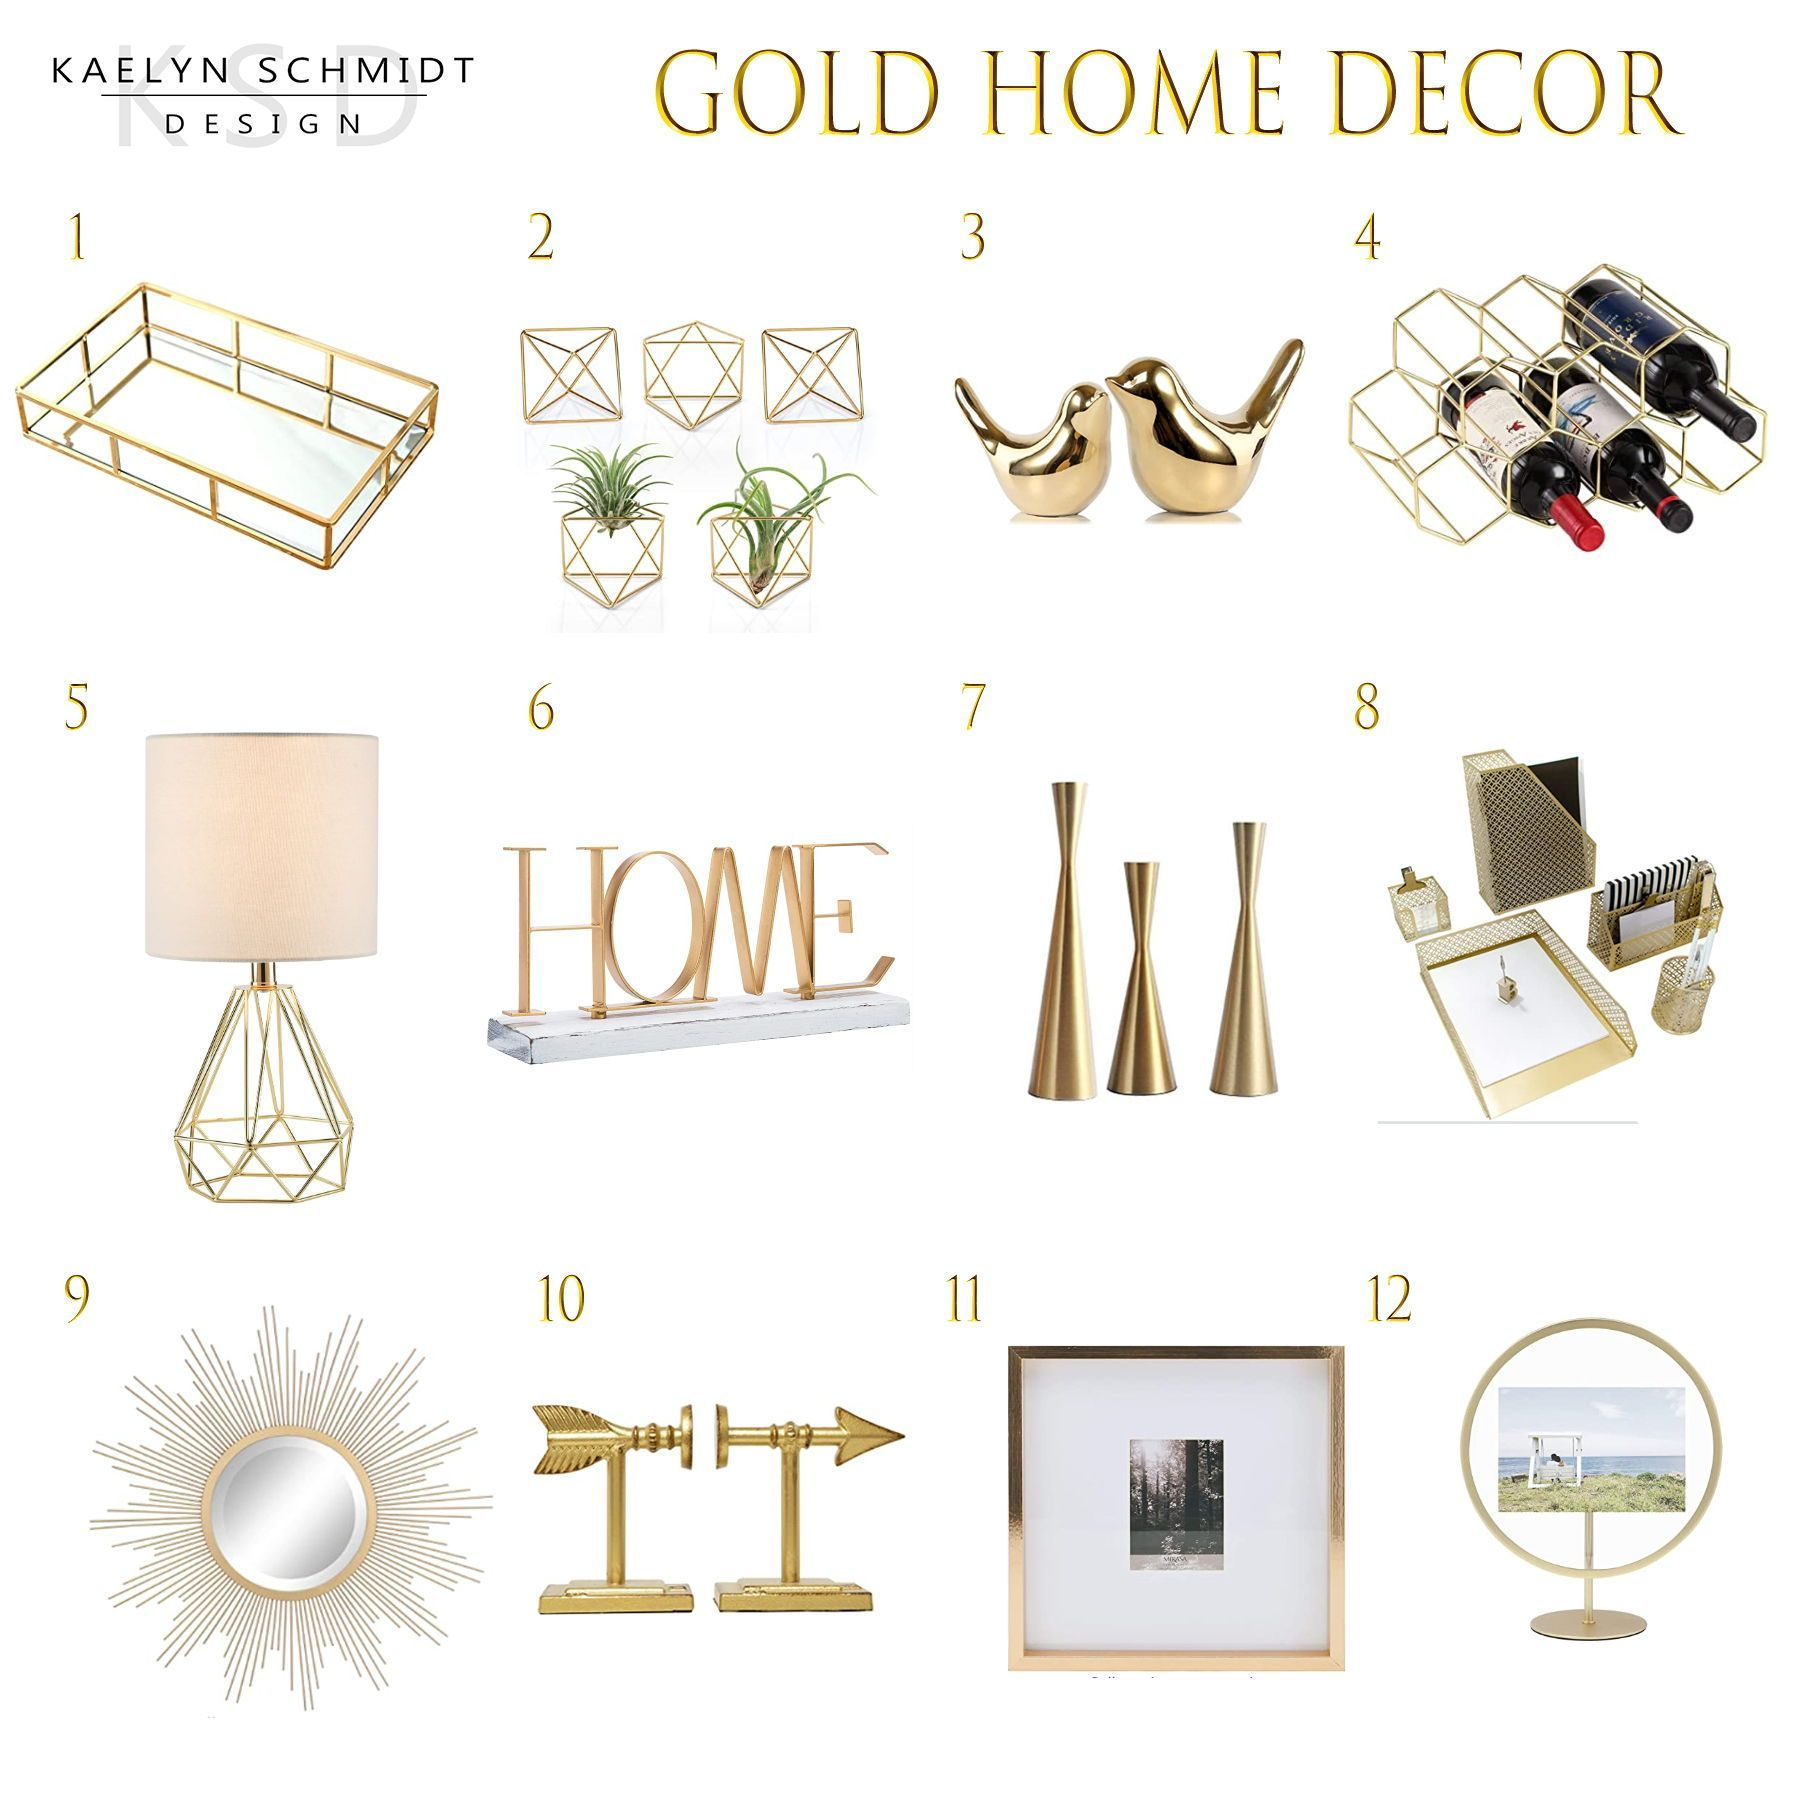 Gold is HOT | KAELYN SCHMIDT DESIGN | All from Amazon for under $50 | check out the blog post for all product links and info | #goldhomedecor #golddecor #goldaccessories #goldhome #amazonhome #amazondecor